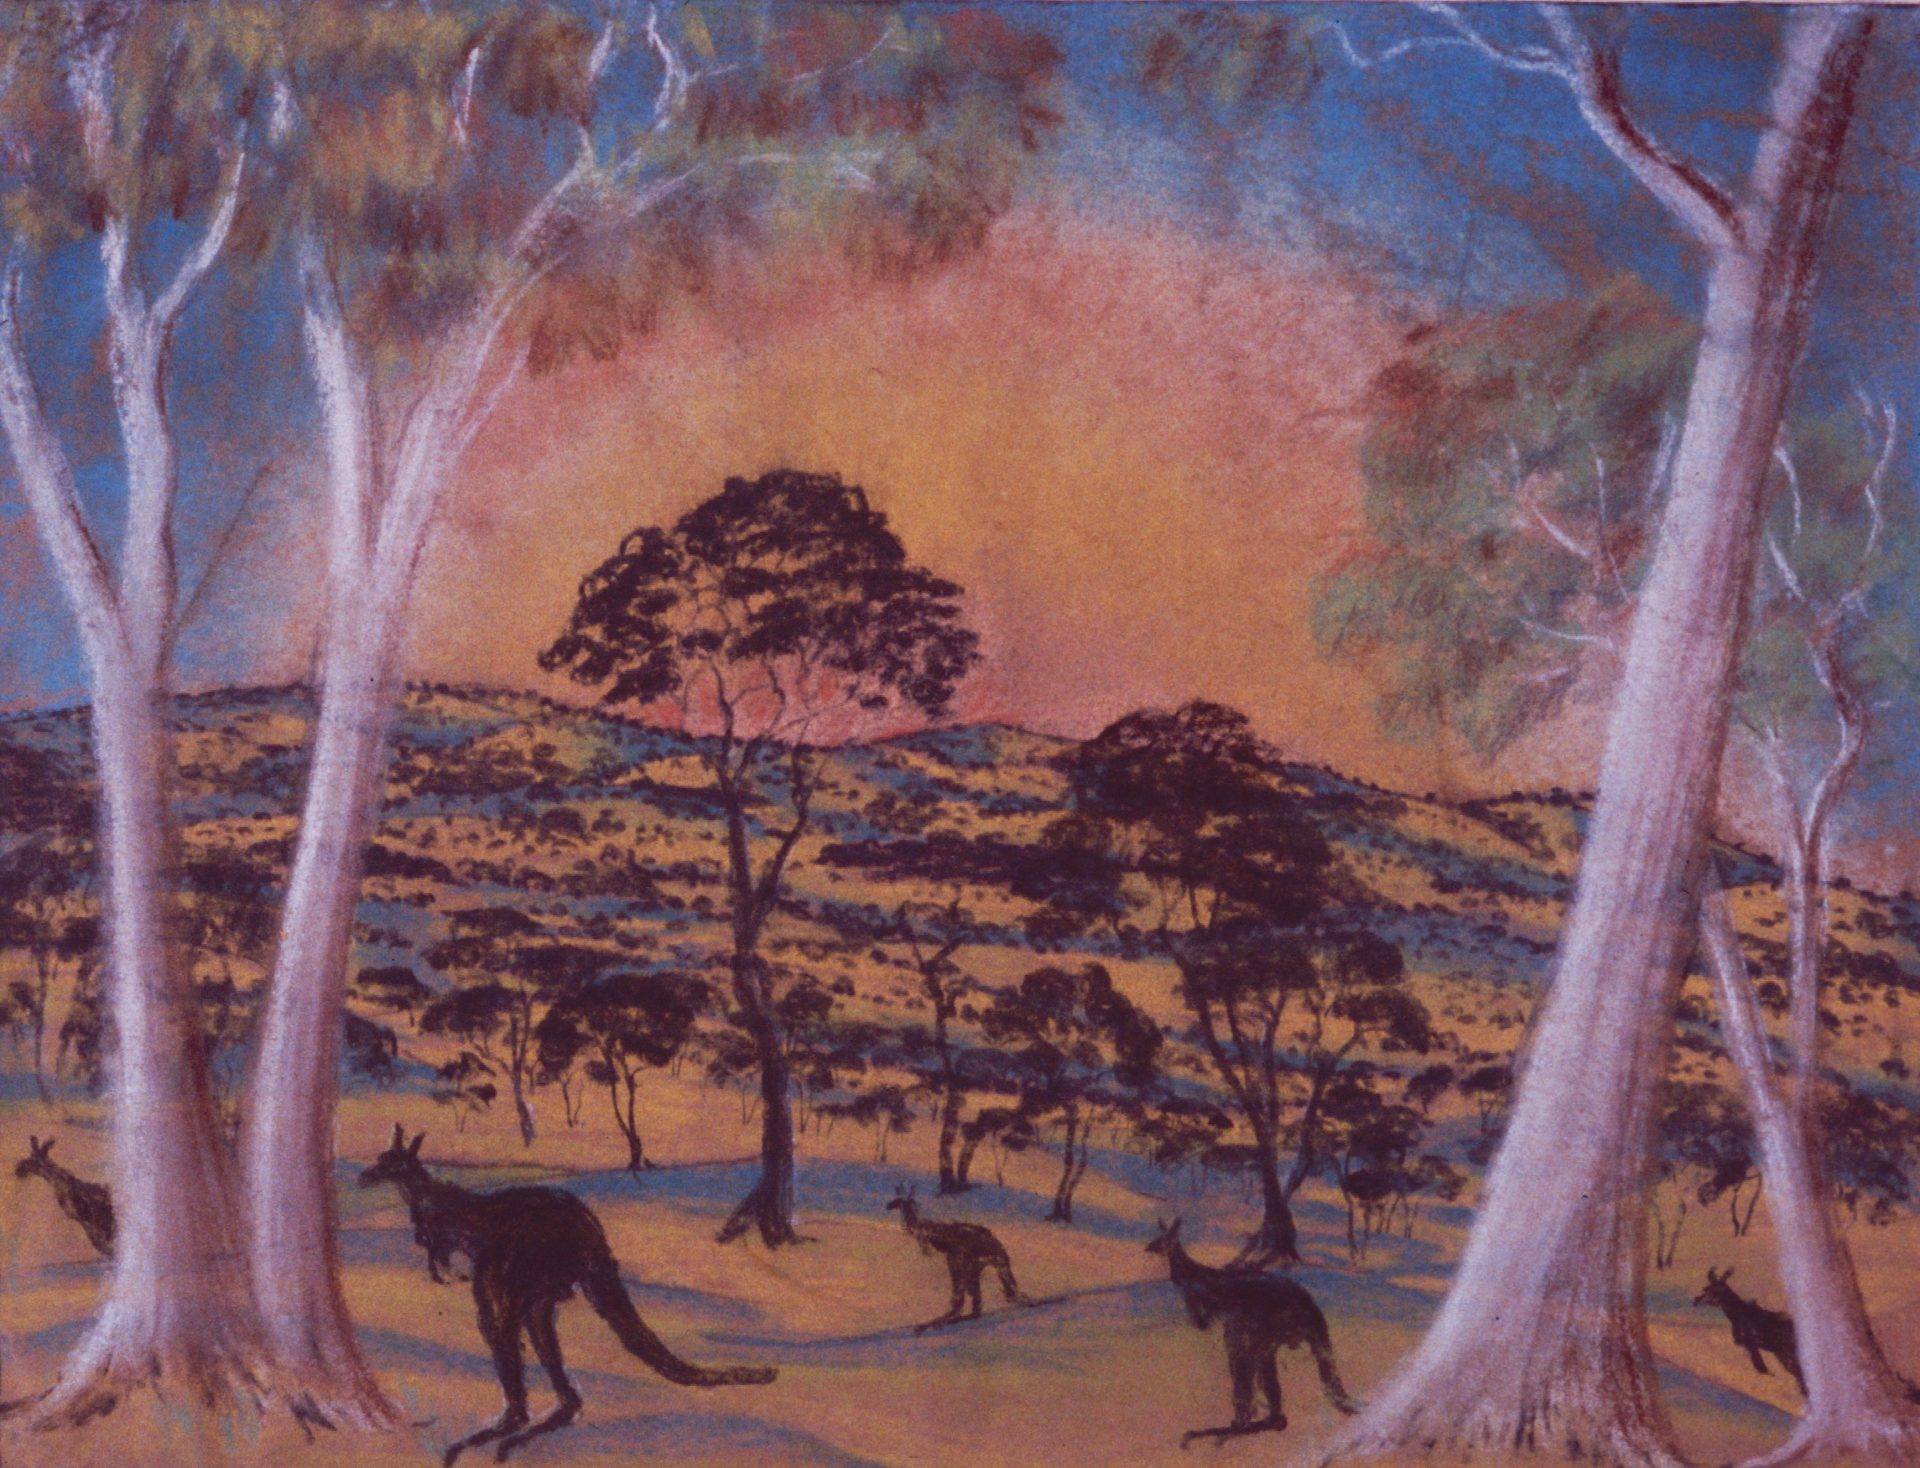 Landscape by Parnell Dempster, pastel on paper, 29 x 37cm, c.1948. Stan, Melvie and Gael Phillips Collection, Berndt Museum of Anthropology. [WU7303]